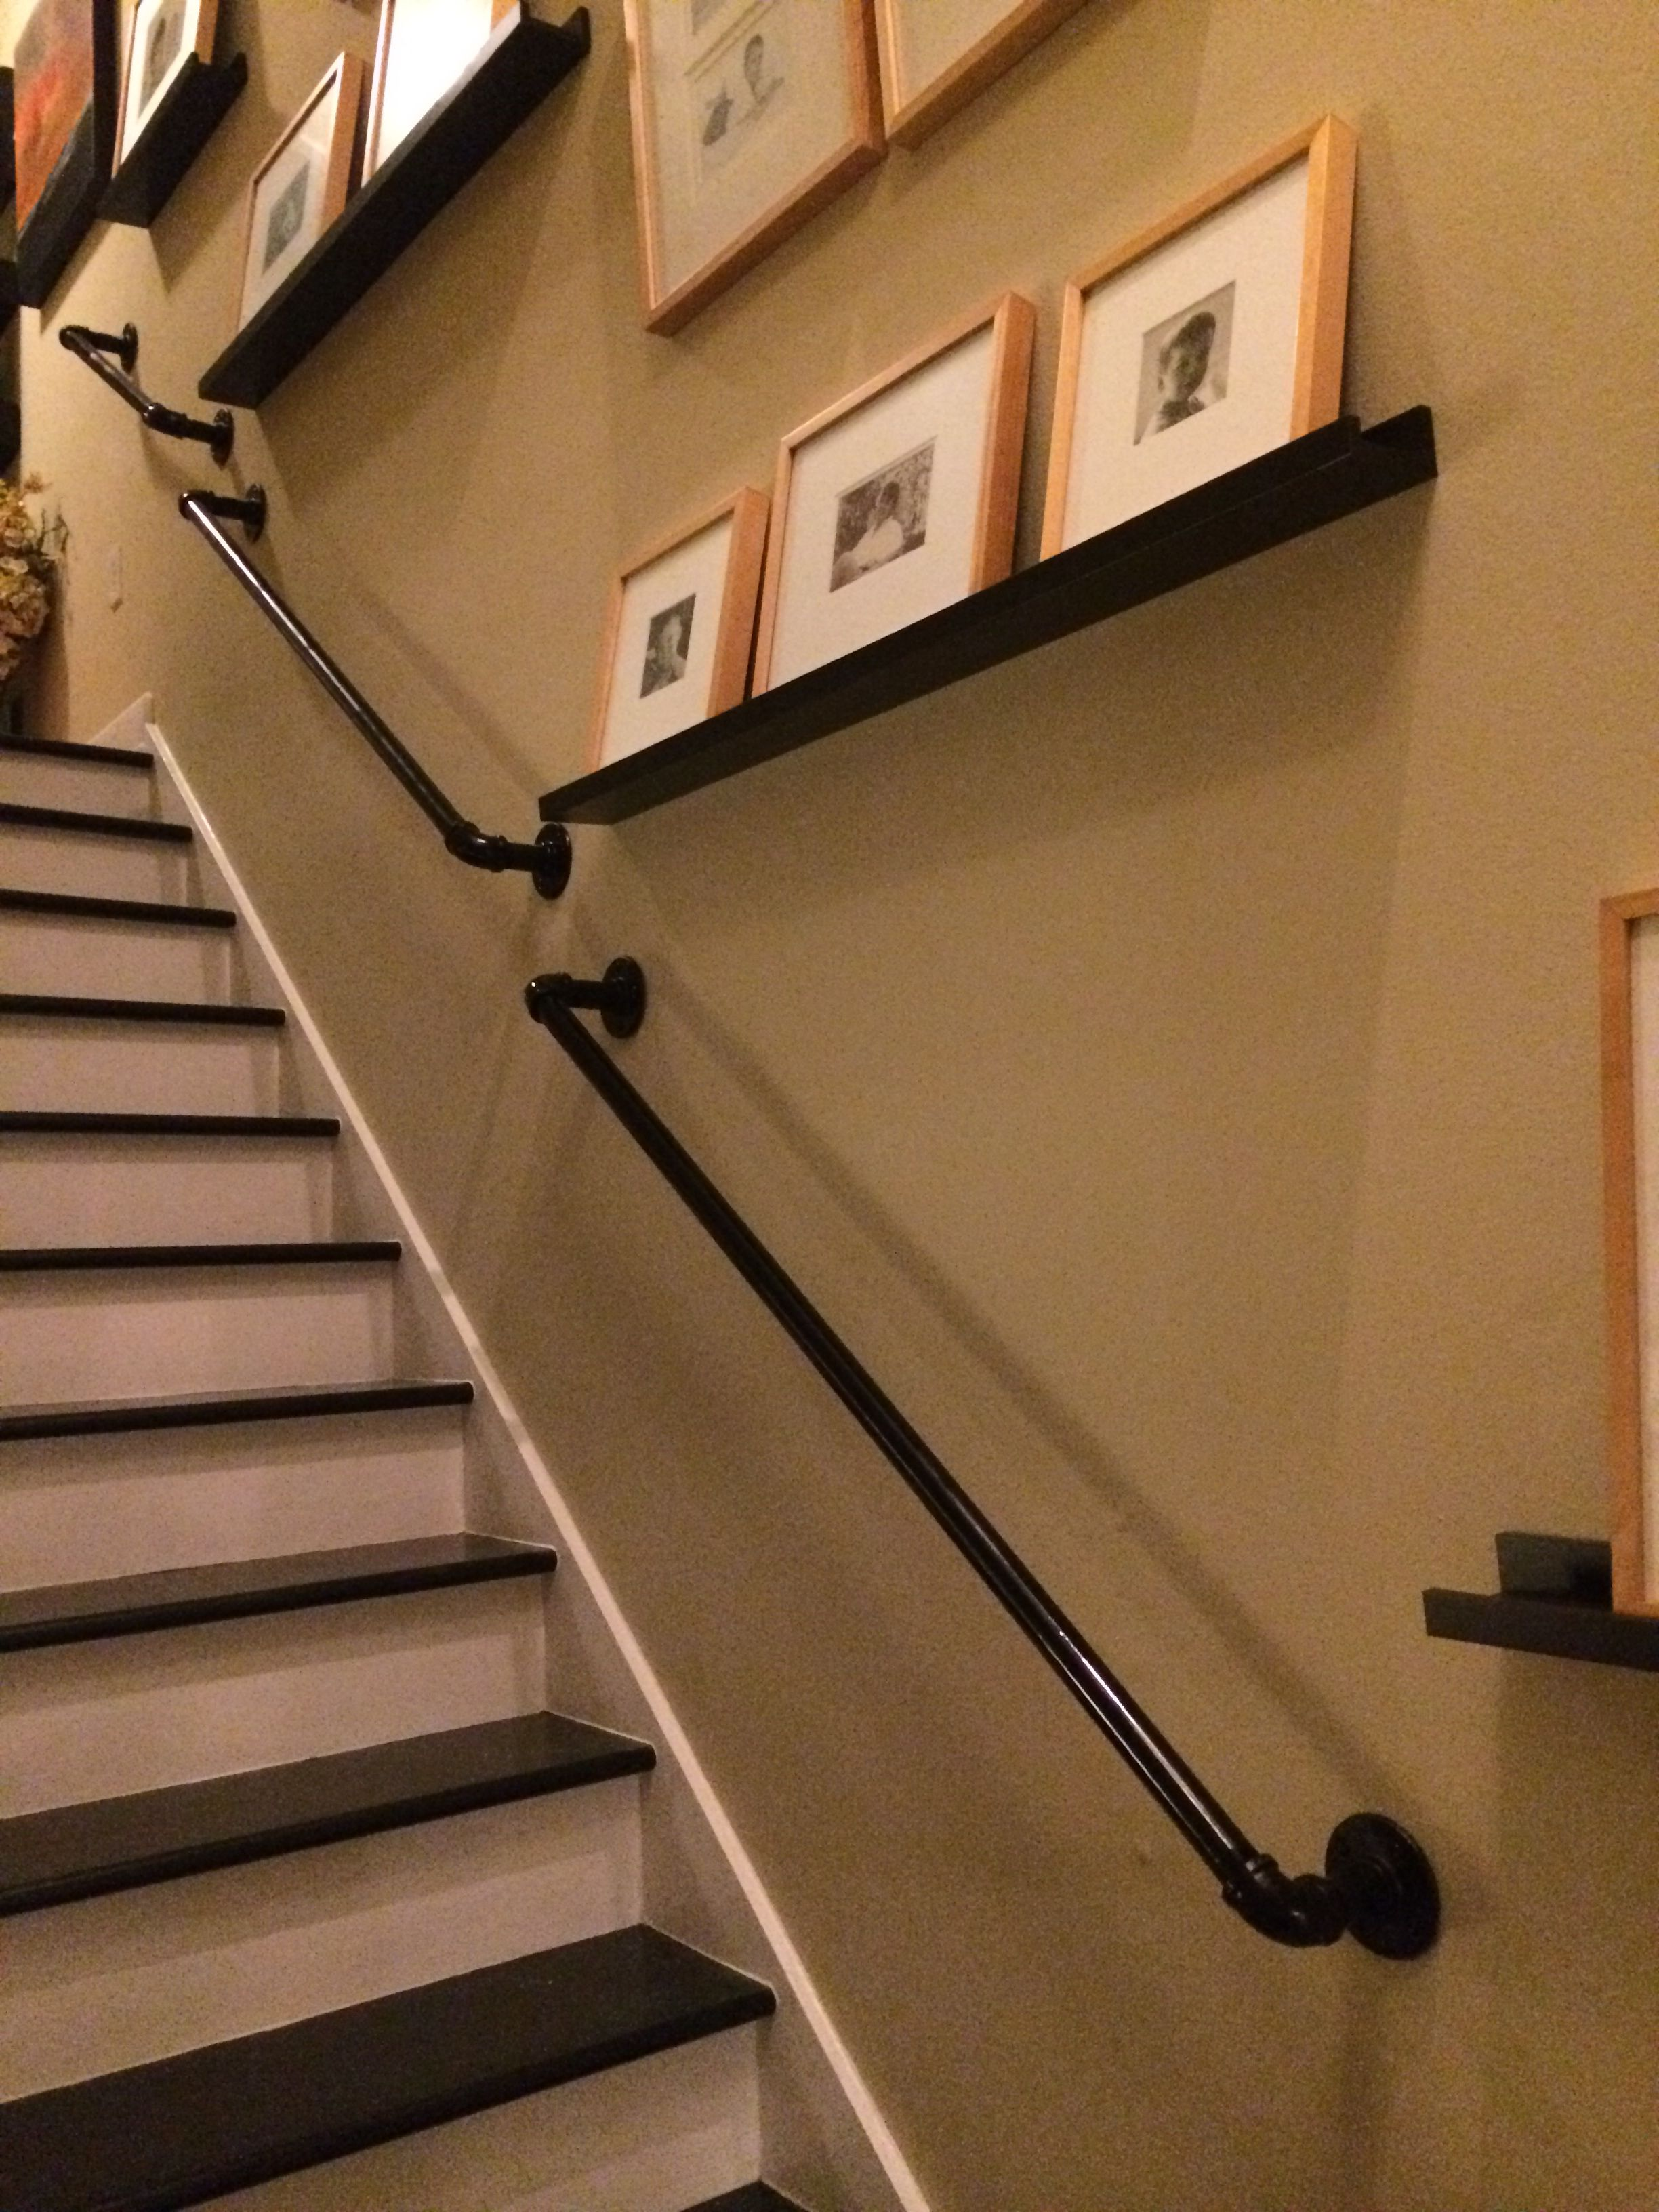 Pin On Home Renos | Black Iron Pipe Handrail | Cast Iron | Horizontal Pipe | Paint Pipe | Stair Outdoor Decatur | Railing Aluminium Pipe